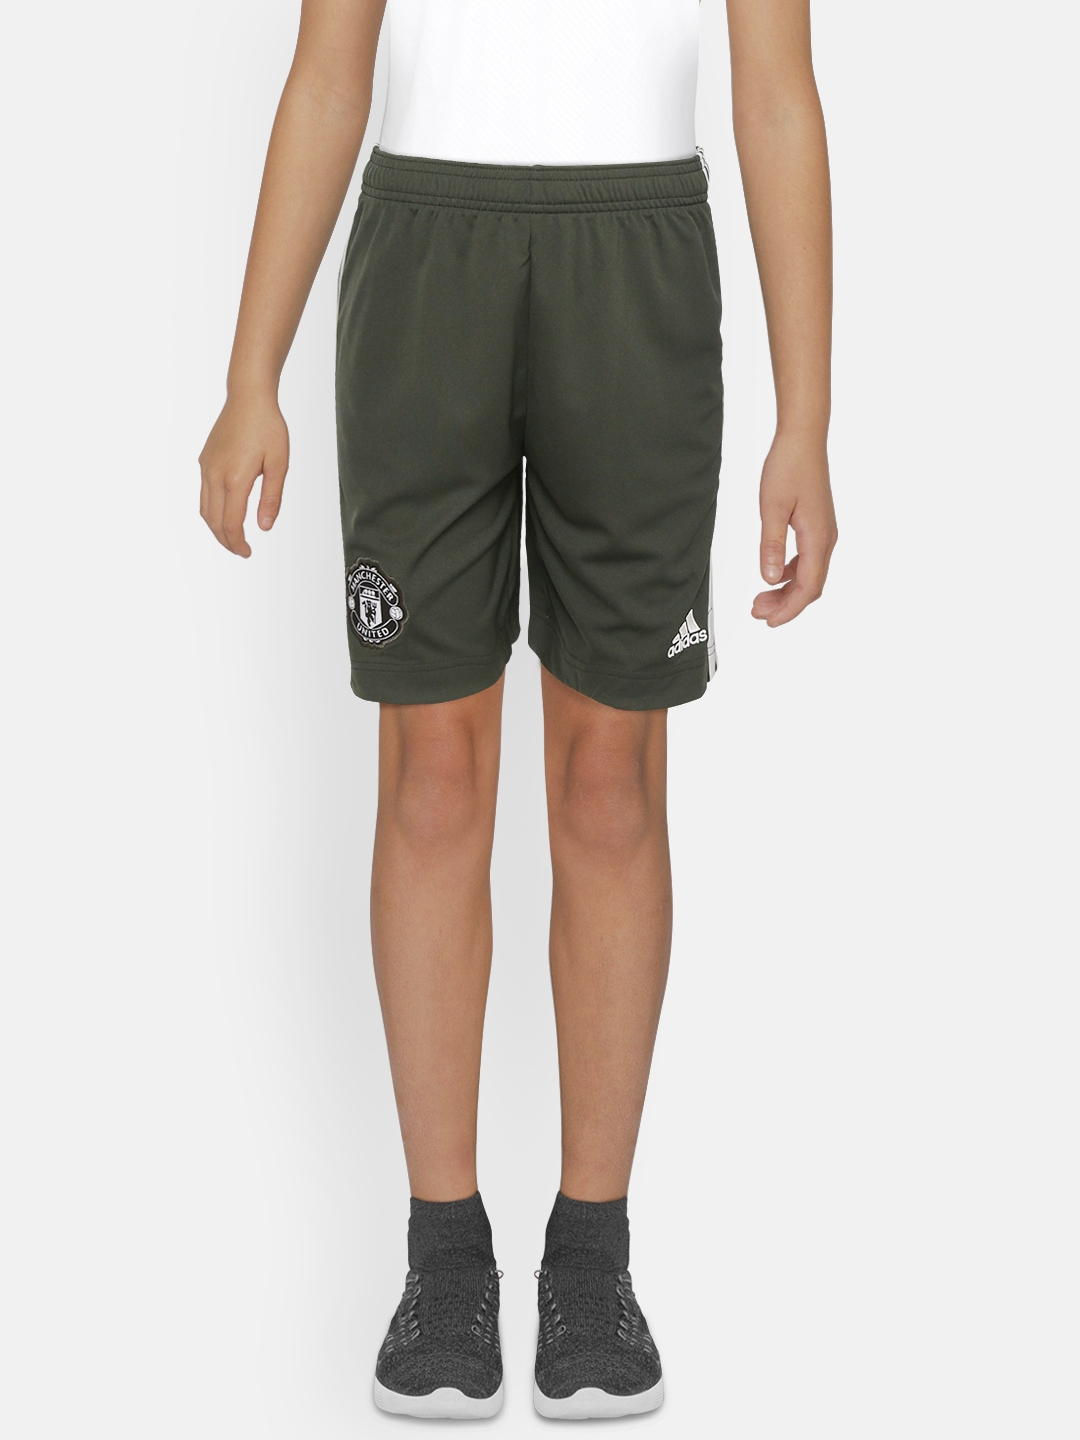 ADIDAS Boys Olive Green Solid Manchester United A Football Shorts